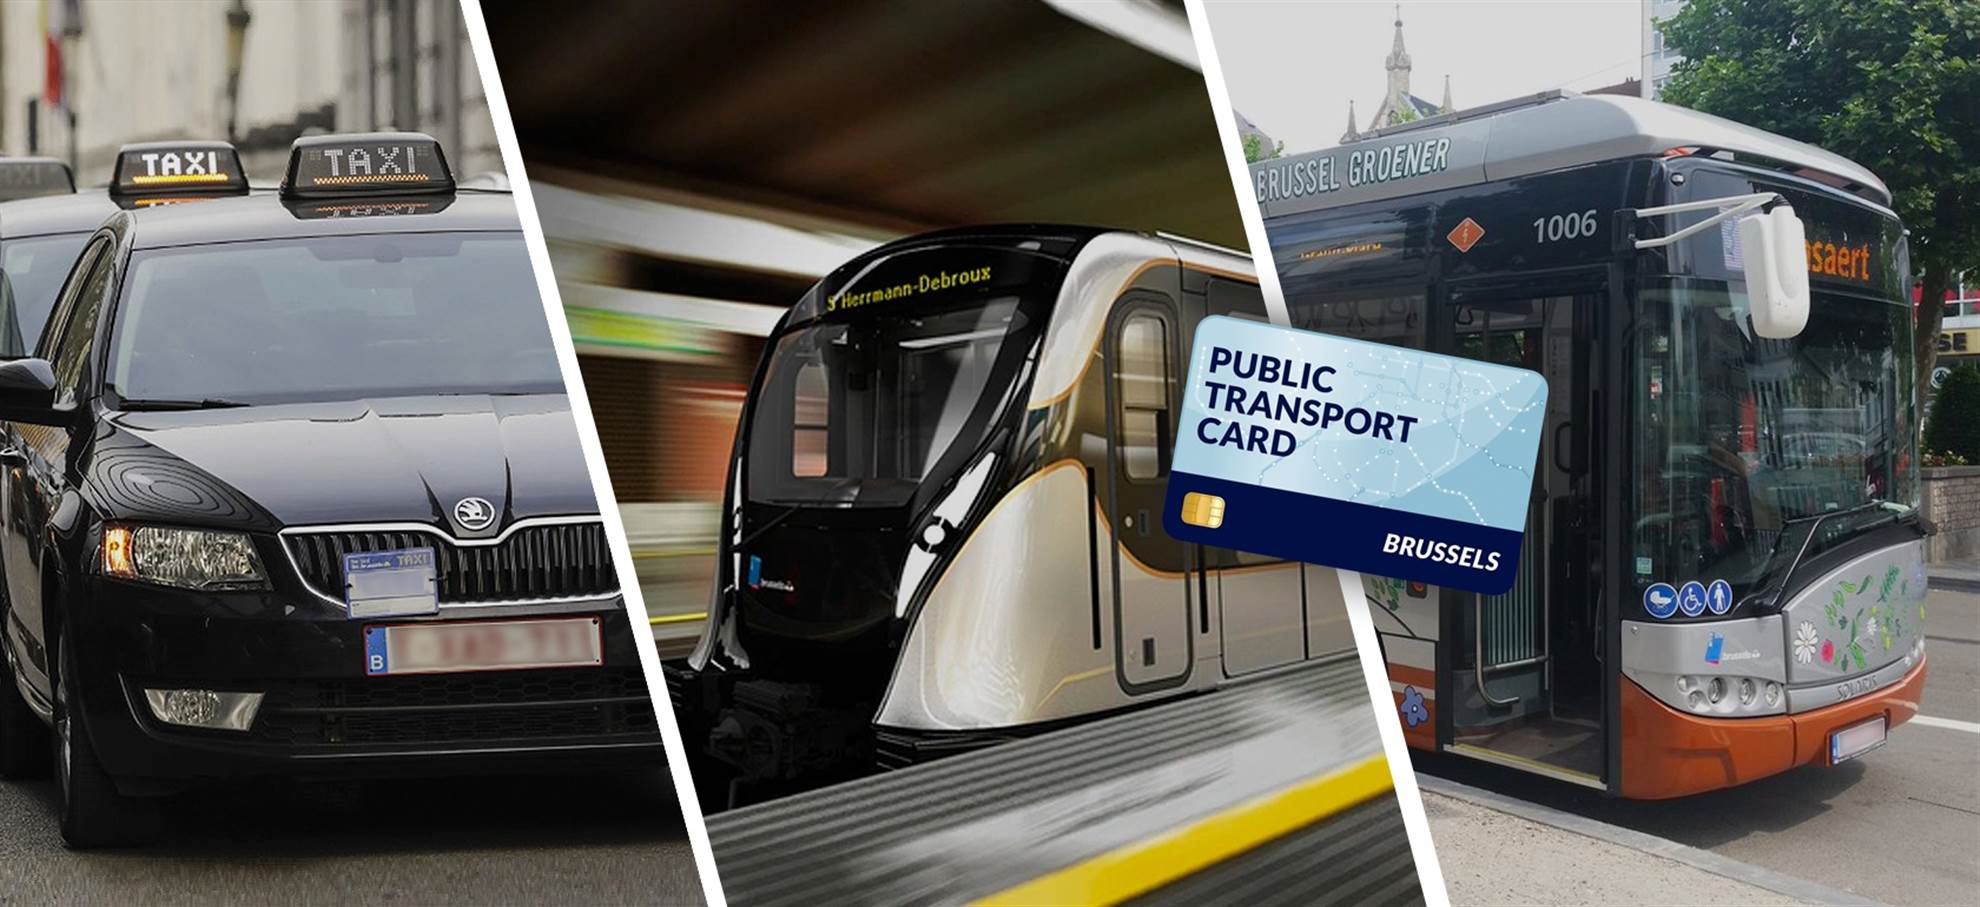 Brussels Travel Card